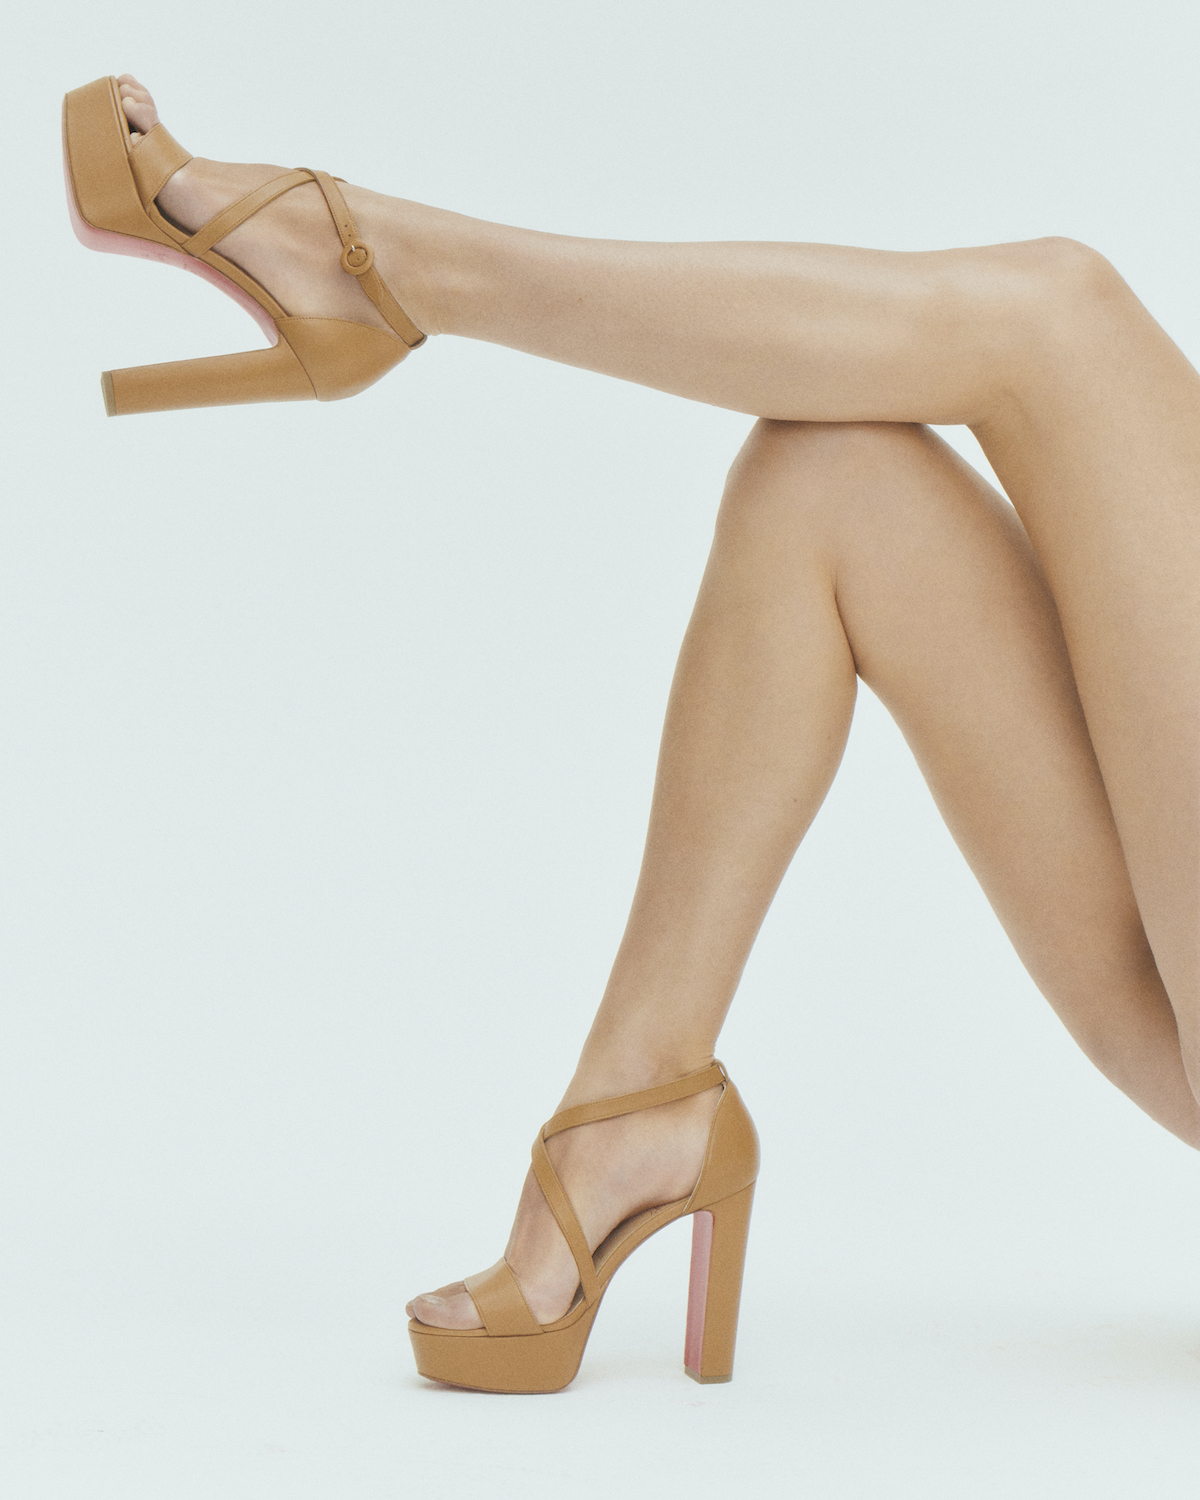 MyTheresa x Christian Louboutin 'Nudes' collection